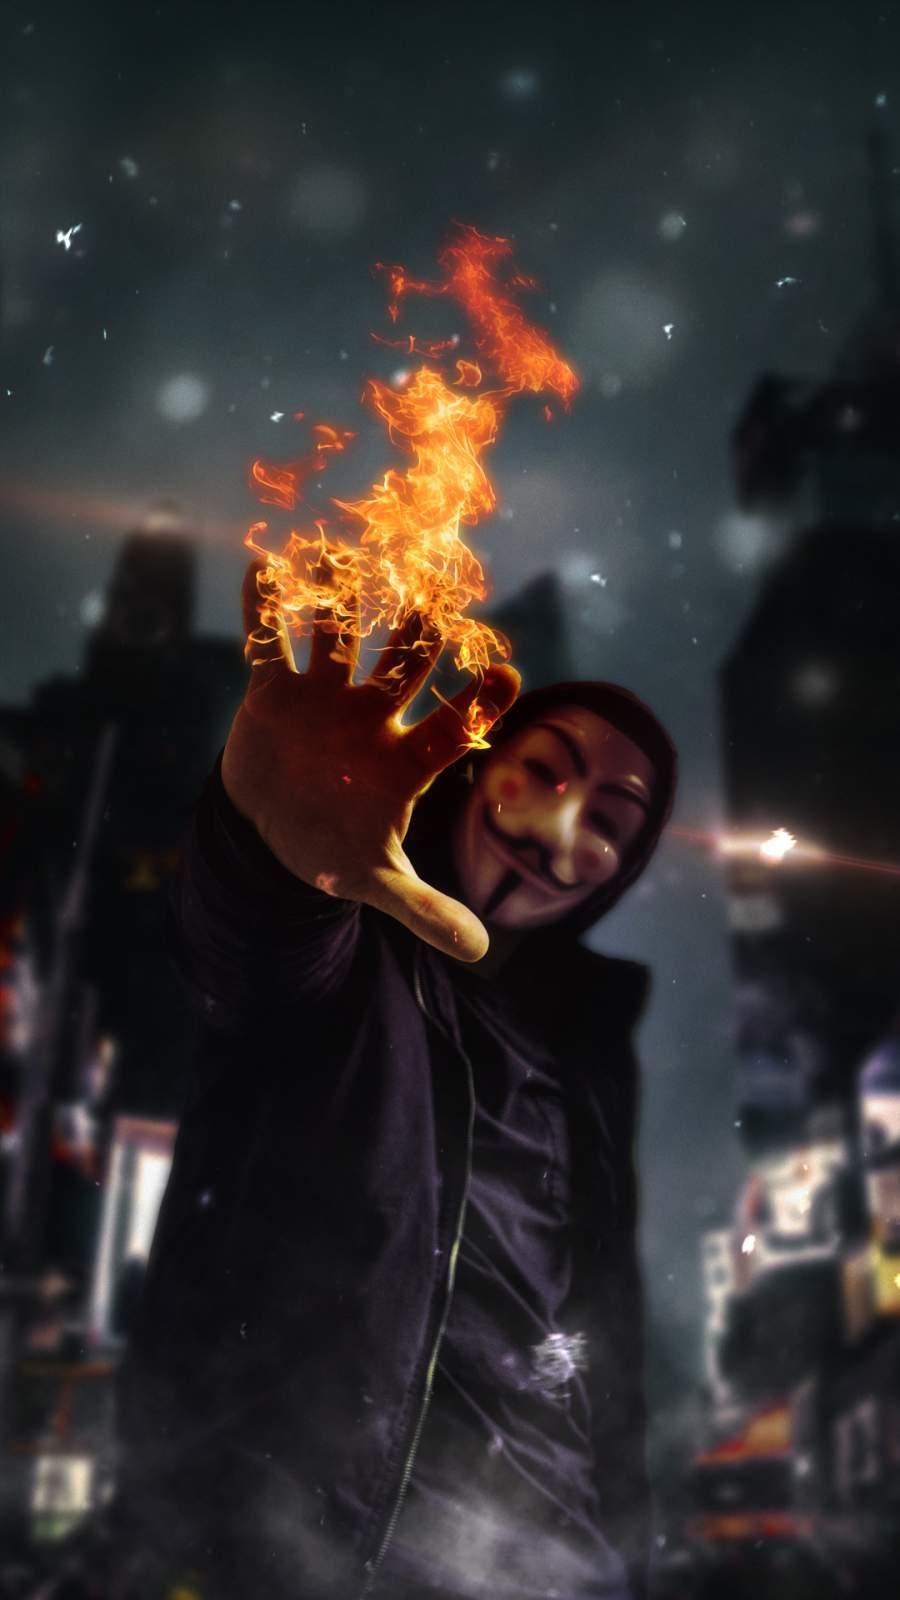 Anonymus Guy with Flame iPhone Wallpaper